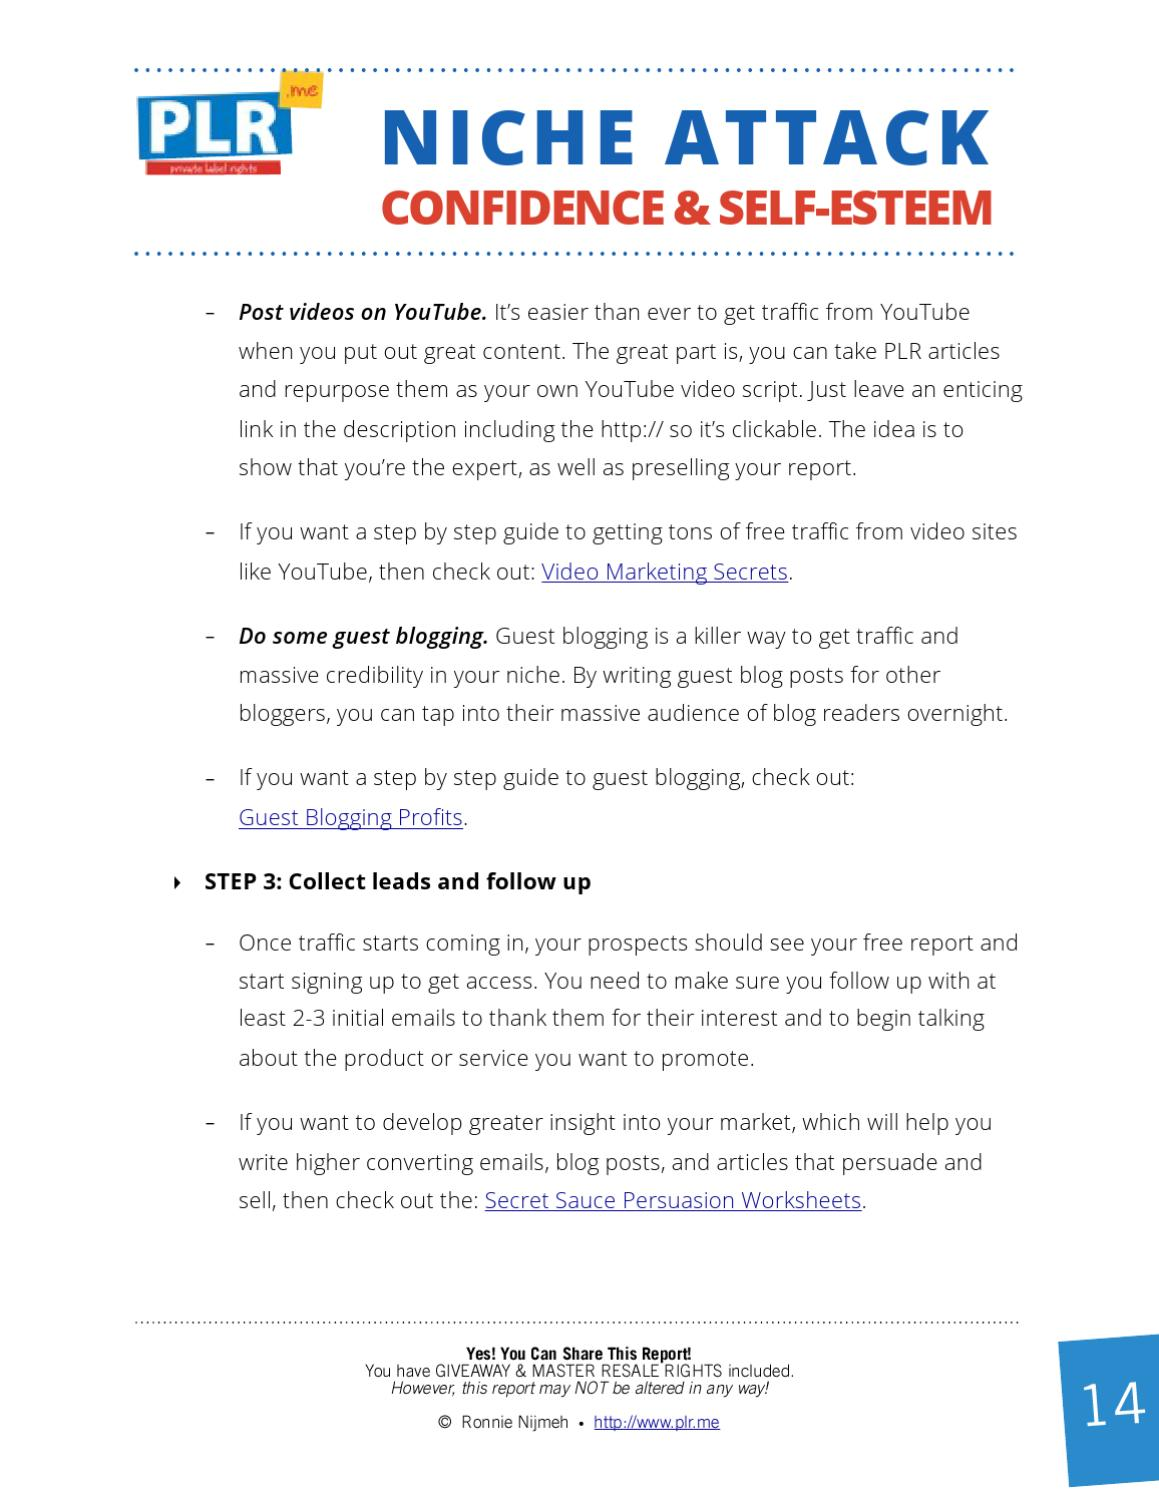 How to Make Money in the Confidence and Self-Esteem Niche by